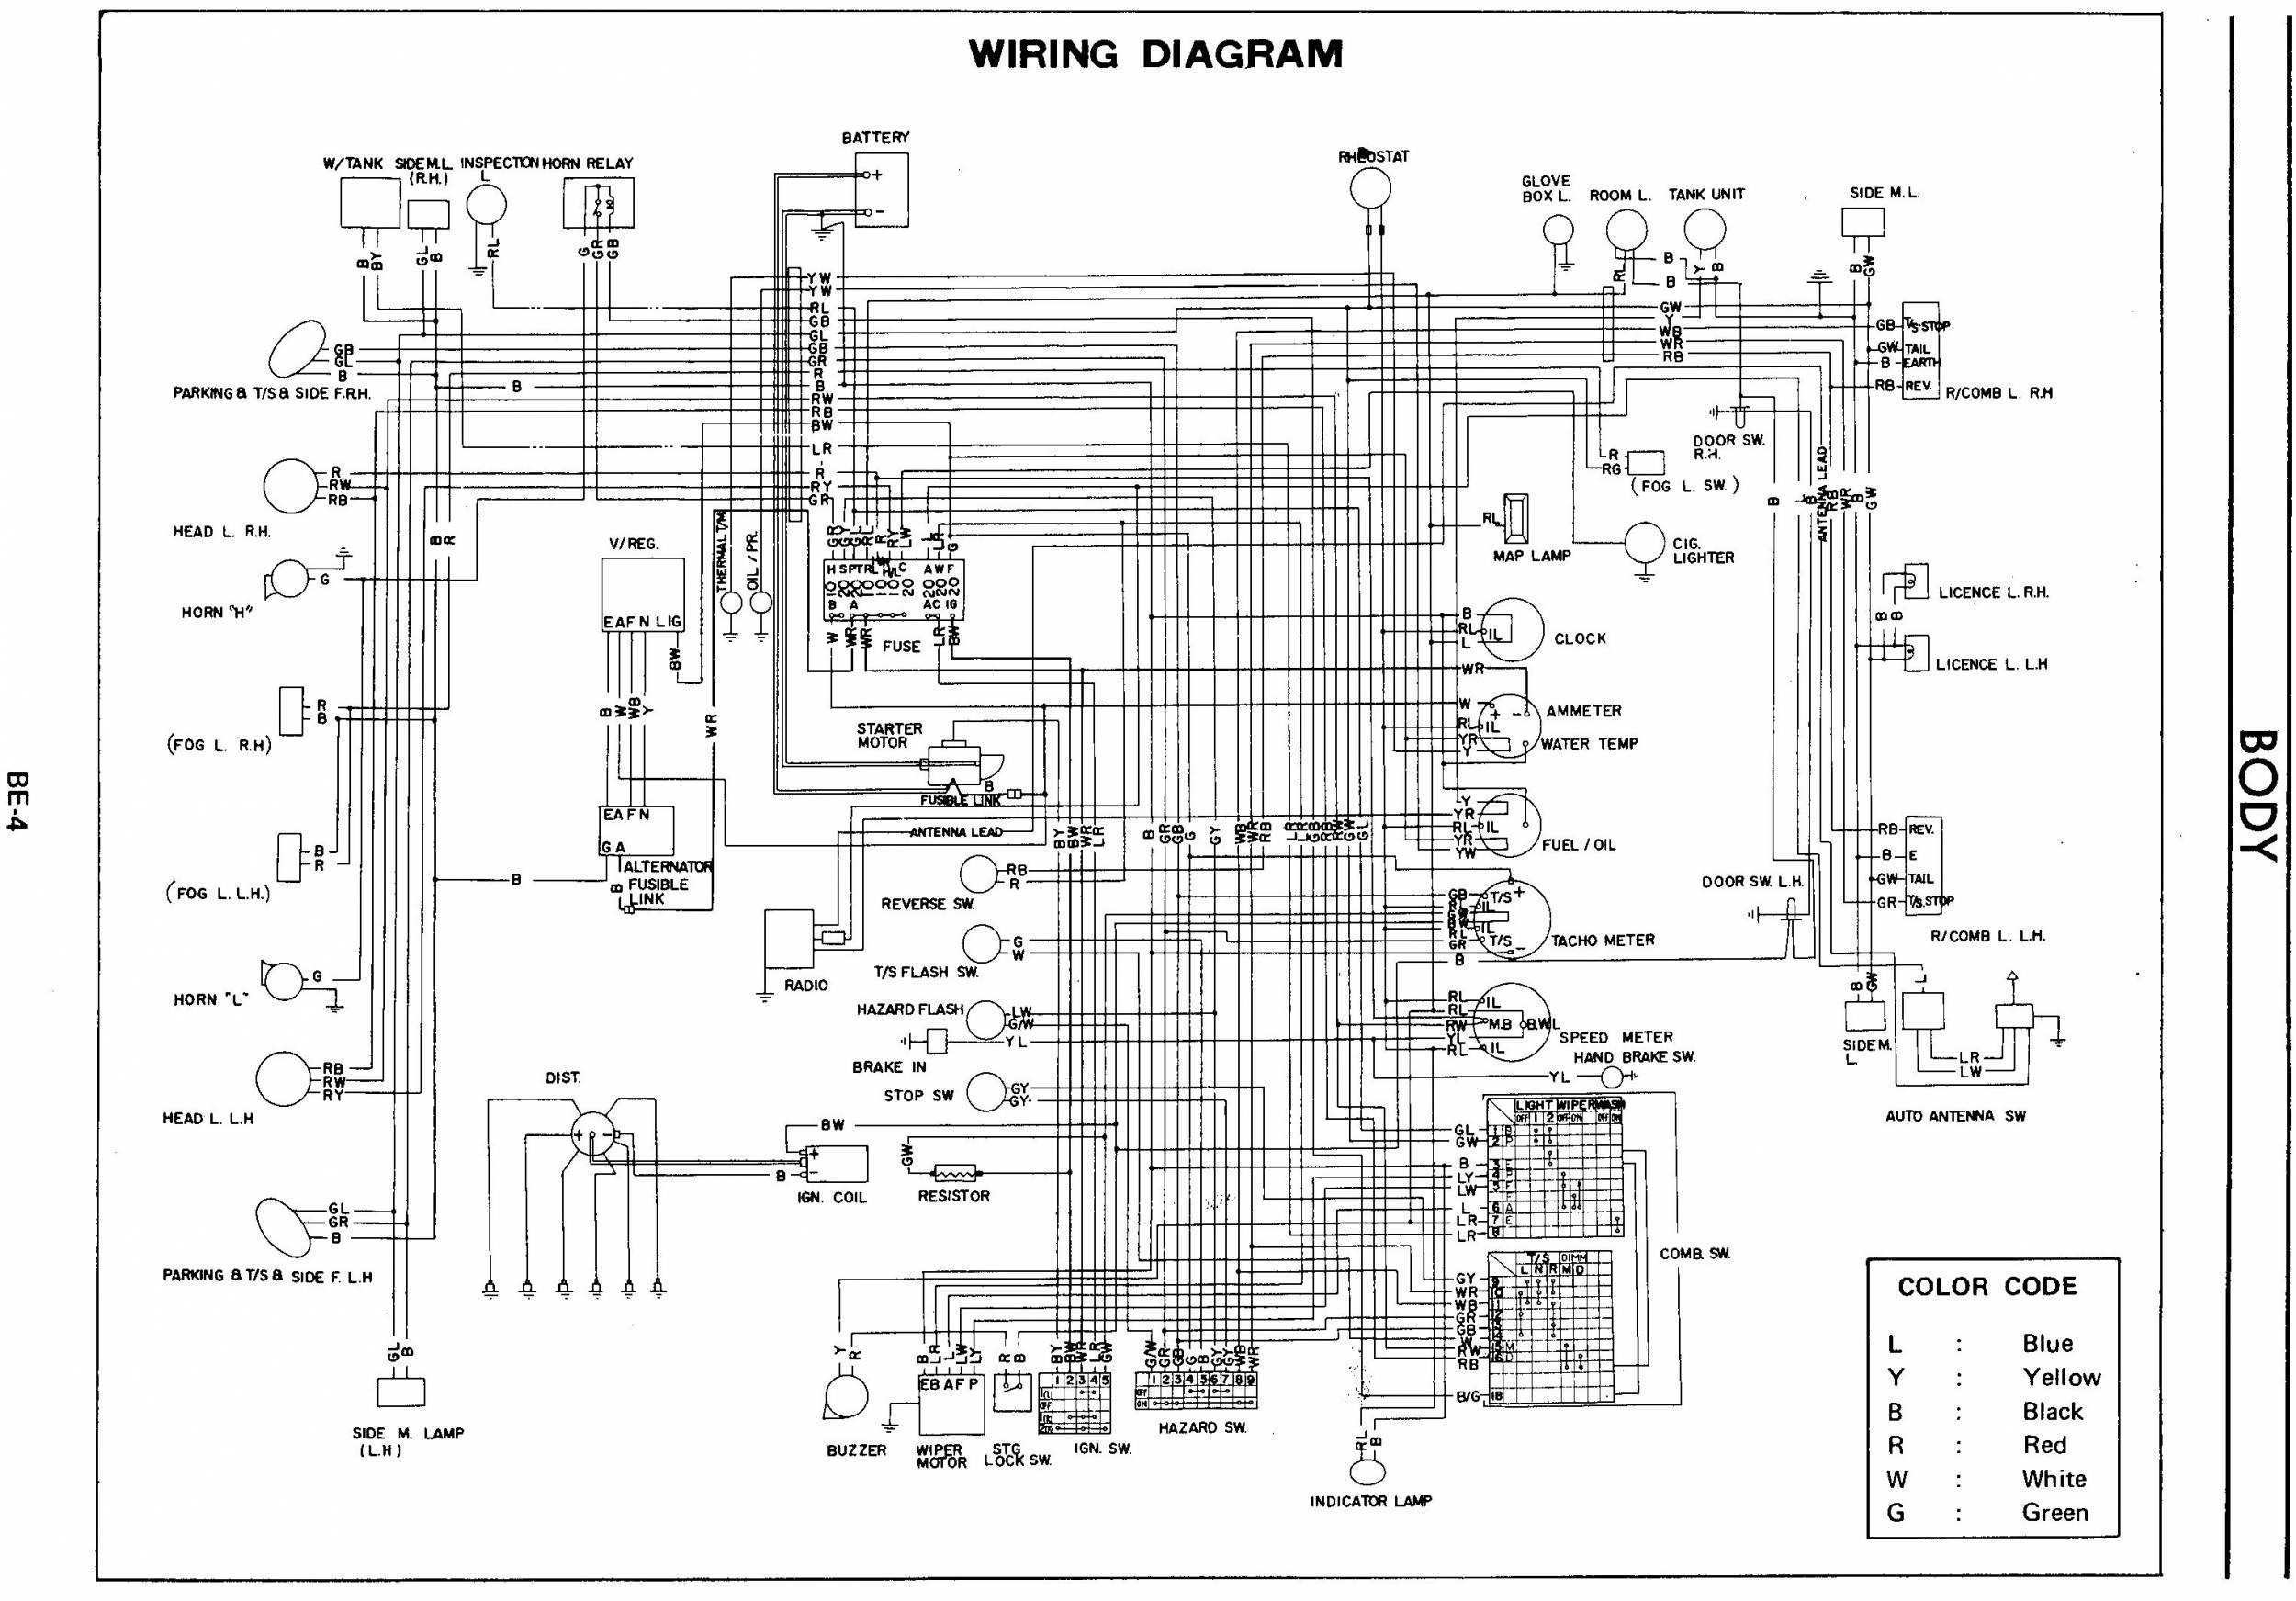 Sprinter Trailer Wiring Diagram | online wiring diagram on dodge sprinter rear axle diagram, sprinter rv wiring diagram, dodge d150 wiring diagram, dodge sprinter antenna, sprinter warning lights diagram, dodge sprinter brakes, dodge aries wiring diagram, dodge sprinter cylinder head, dodge sprinter belt diagram, dodge sprinter engine diagram, dodge omni wiring diagram, dodge sprinter lights, dodge sprinter hose, dodge viper wiring diagram, dodge magnum wiring diagram, 2007 dodge 3500 relay diagram, dodge sprinter exhaust, dodge w150 wiring diagram, dodge sprinter ignition, dodge sprinter radiator diagram,